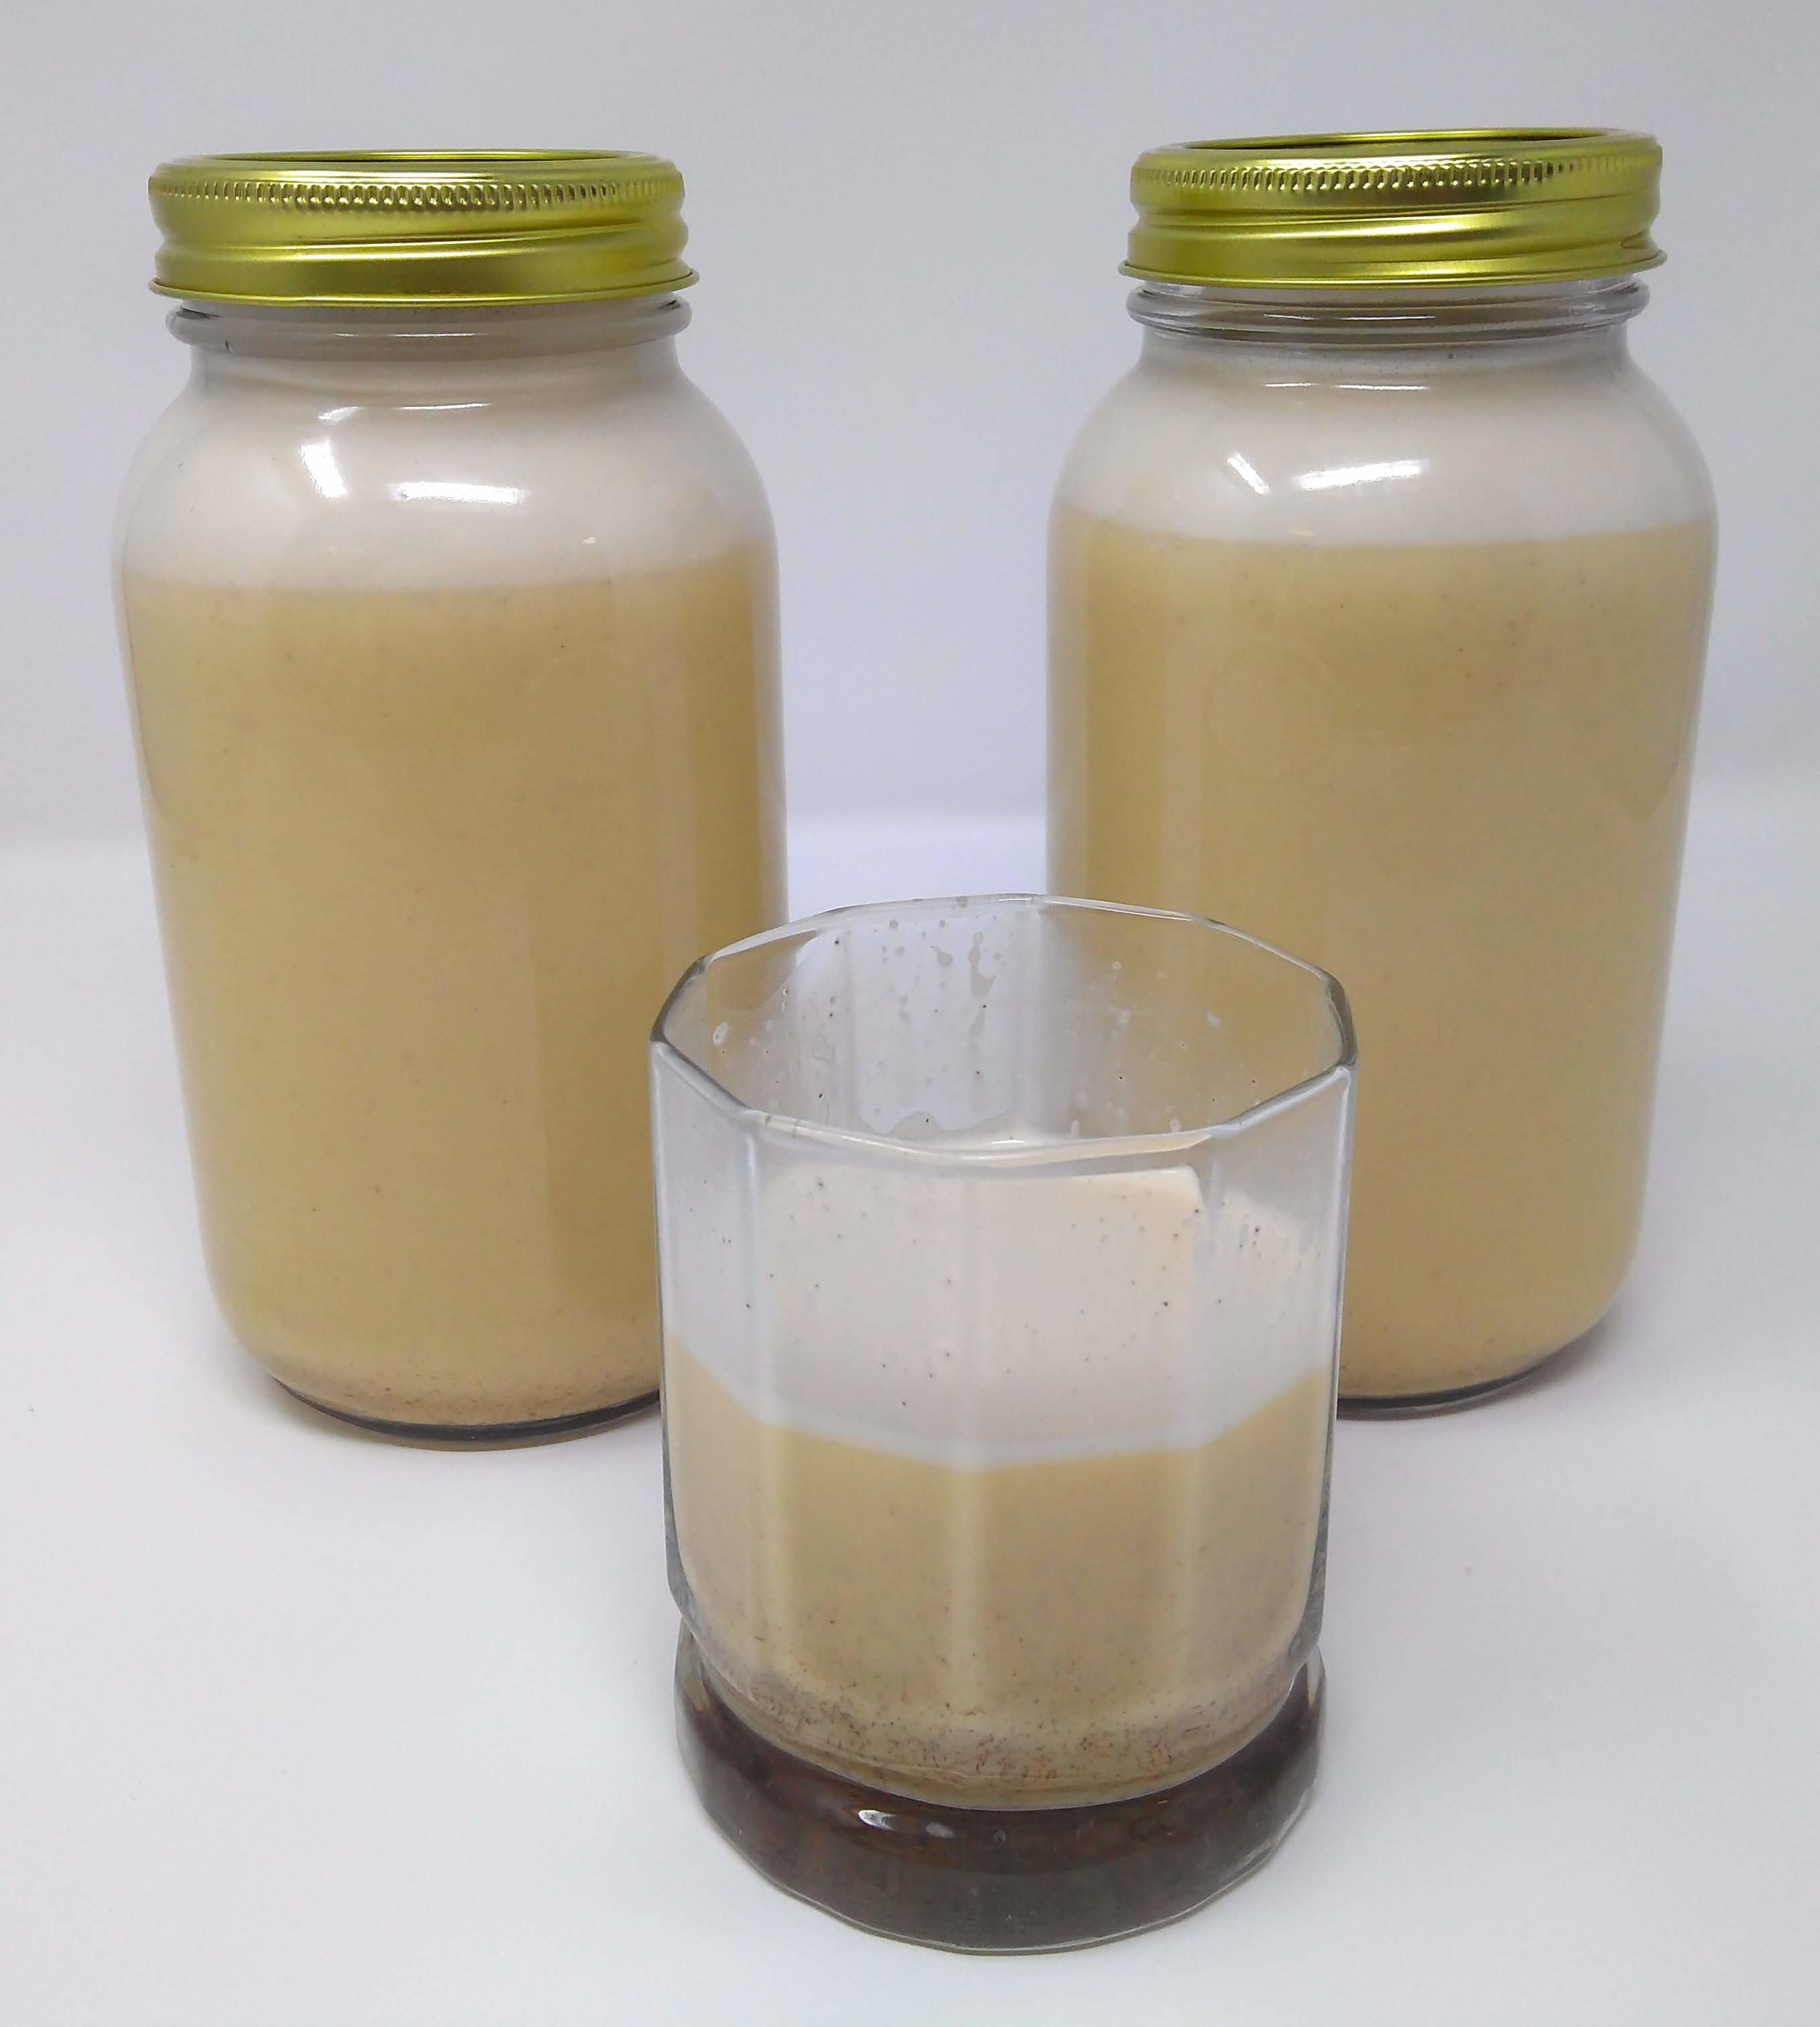 Homemade Cinnamon Vanilla Eggnog - final product